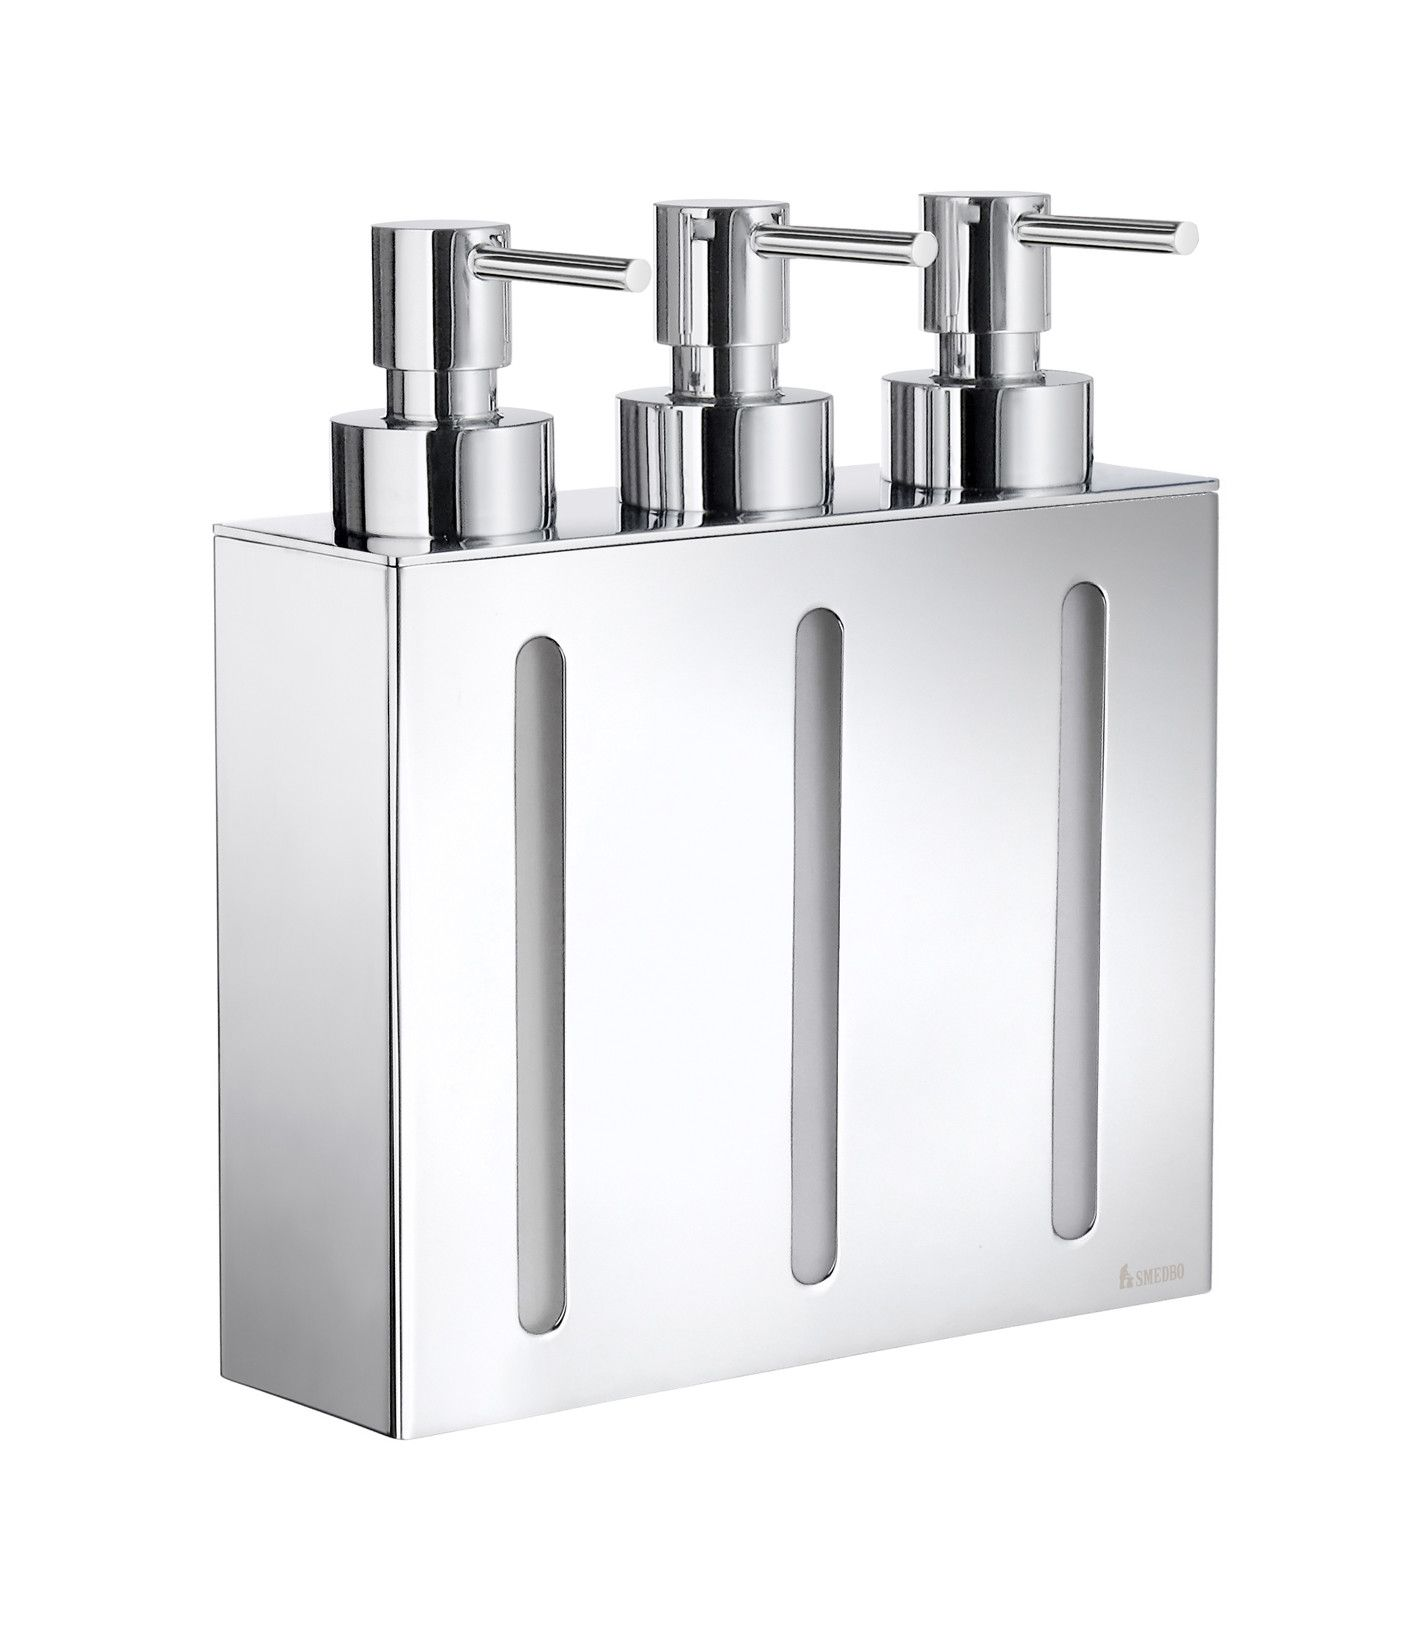 Outline Three Container Soap And Lotion Dispenser Soap Dispenser Wall Bathroom Soap Dispenser Soap Dispenser